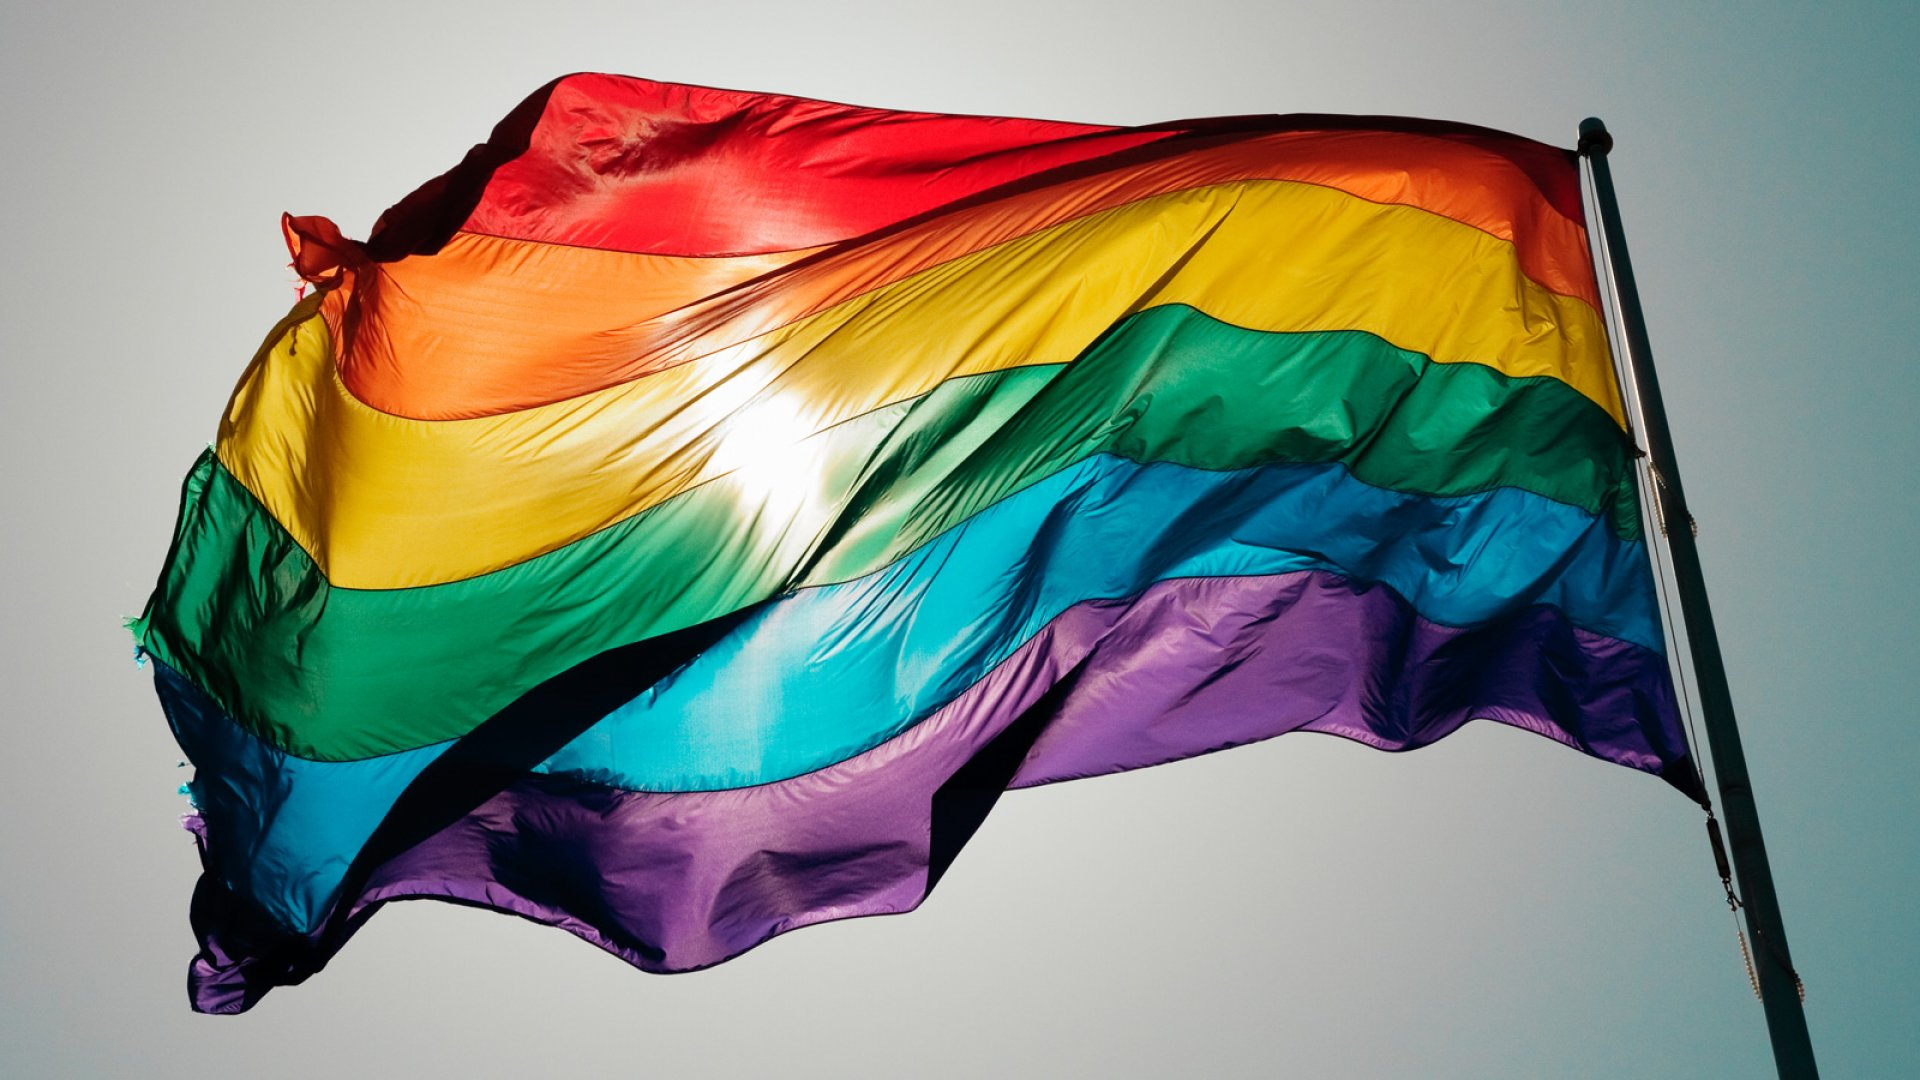 Obama Bucks Religious Groups in New LGBT Executive Order